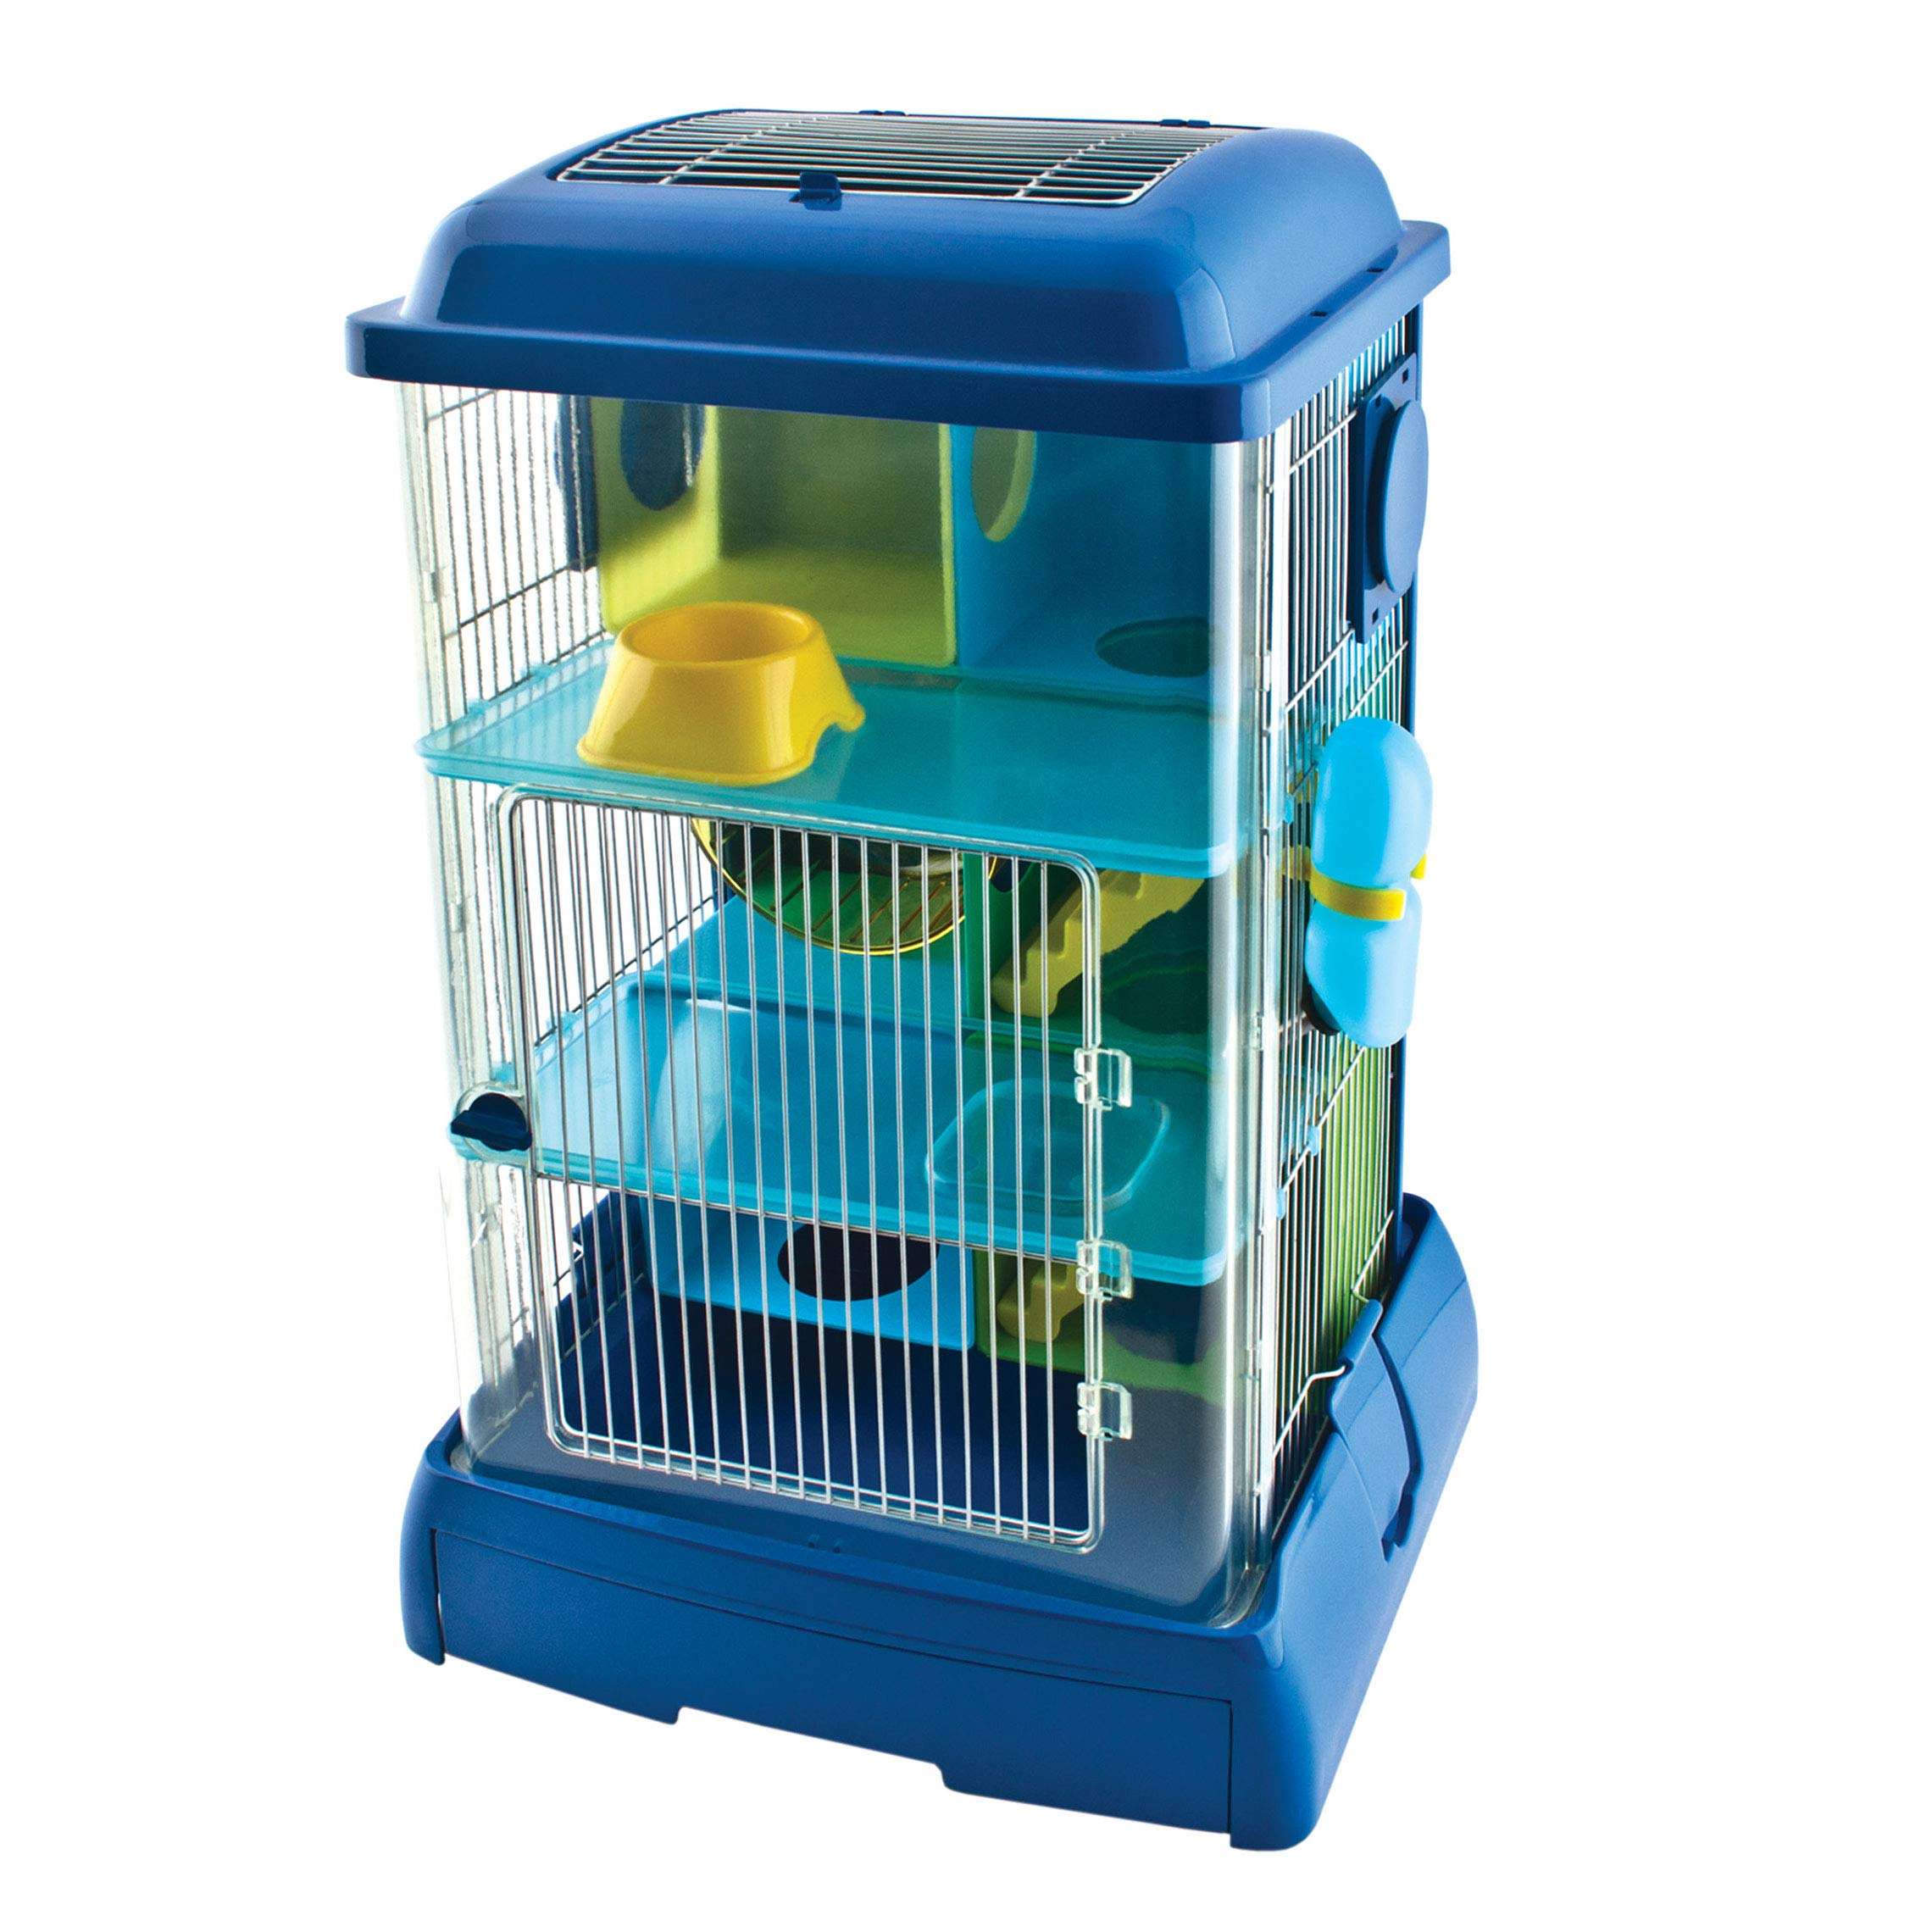 Ware Manufacturing Critter Universe AvaTower Hamster, Mice & Gerbil Habitat by Ware Manufacturing